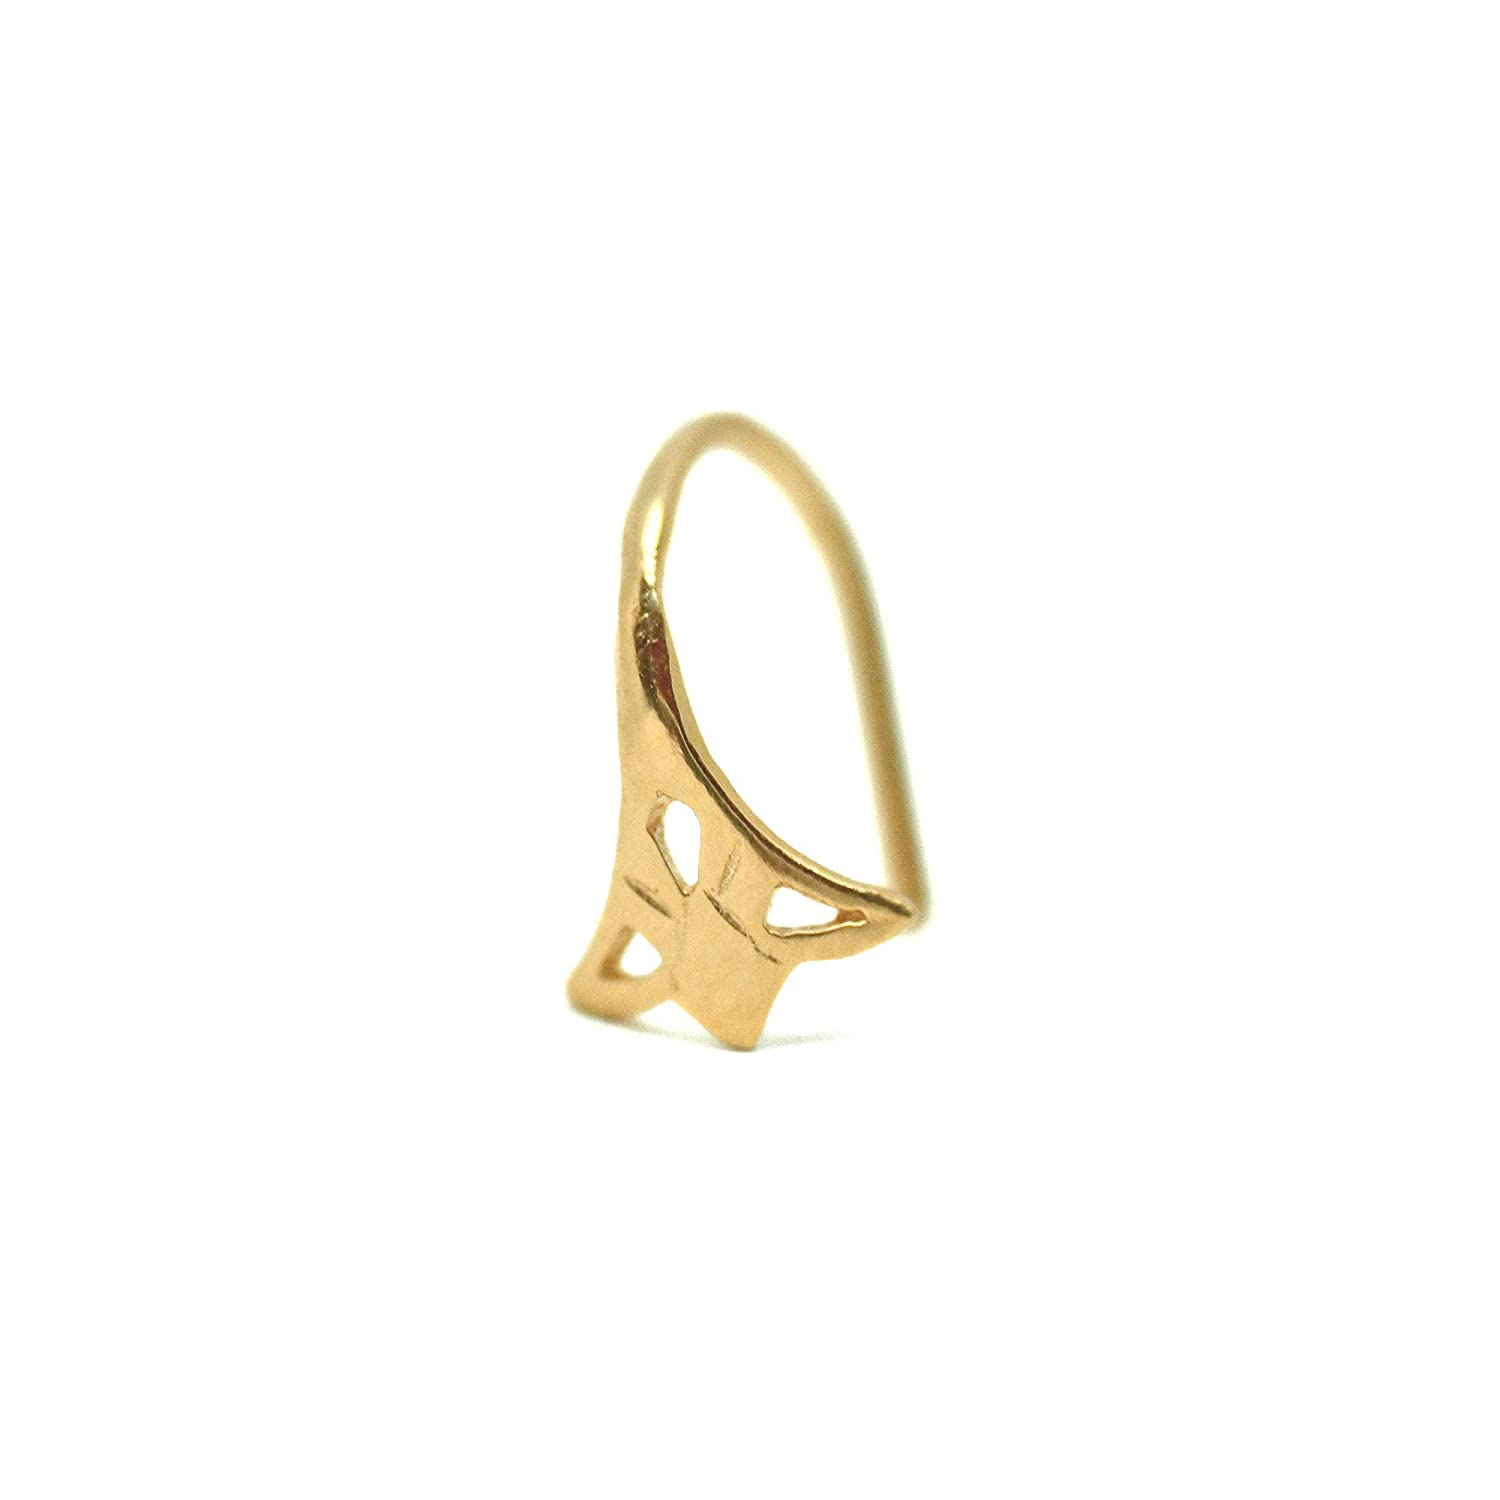 Gold Nose Ring Unique Plated Piercing Indian Quantity limited Tribal Ranking TOP4 Hoop